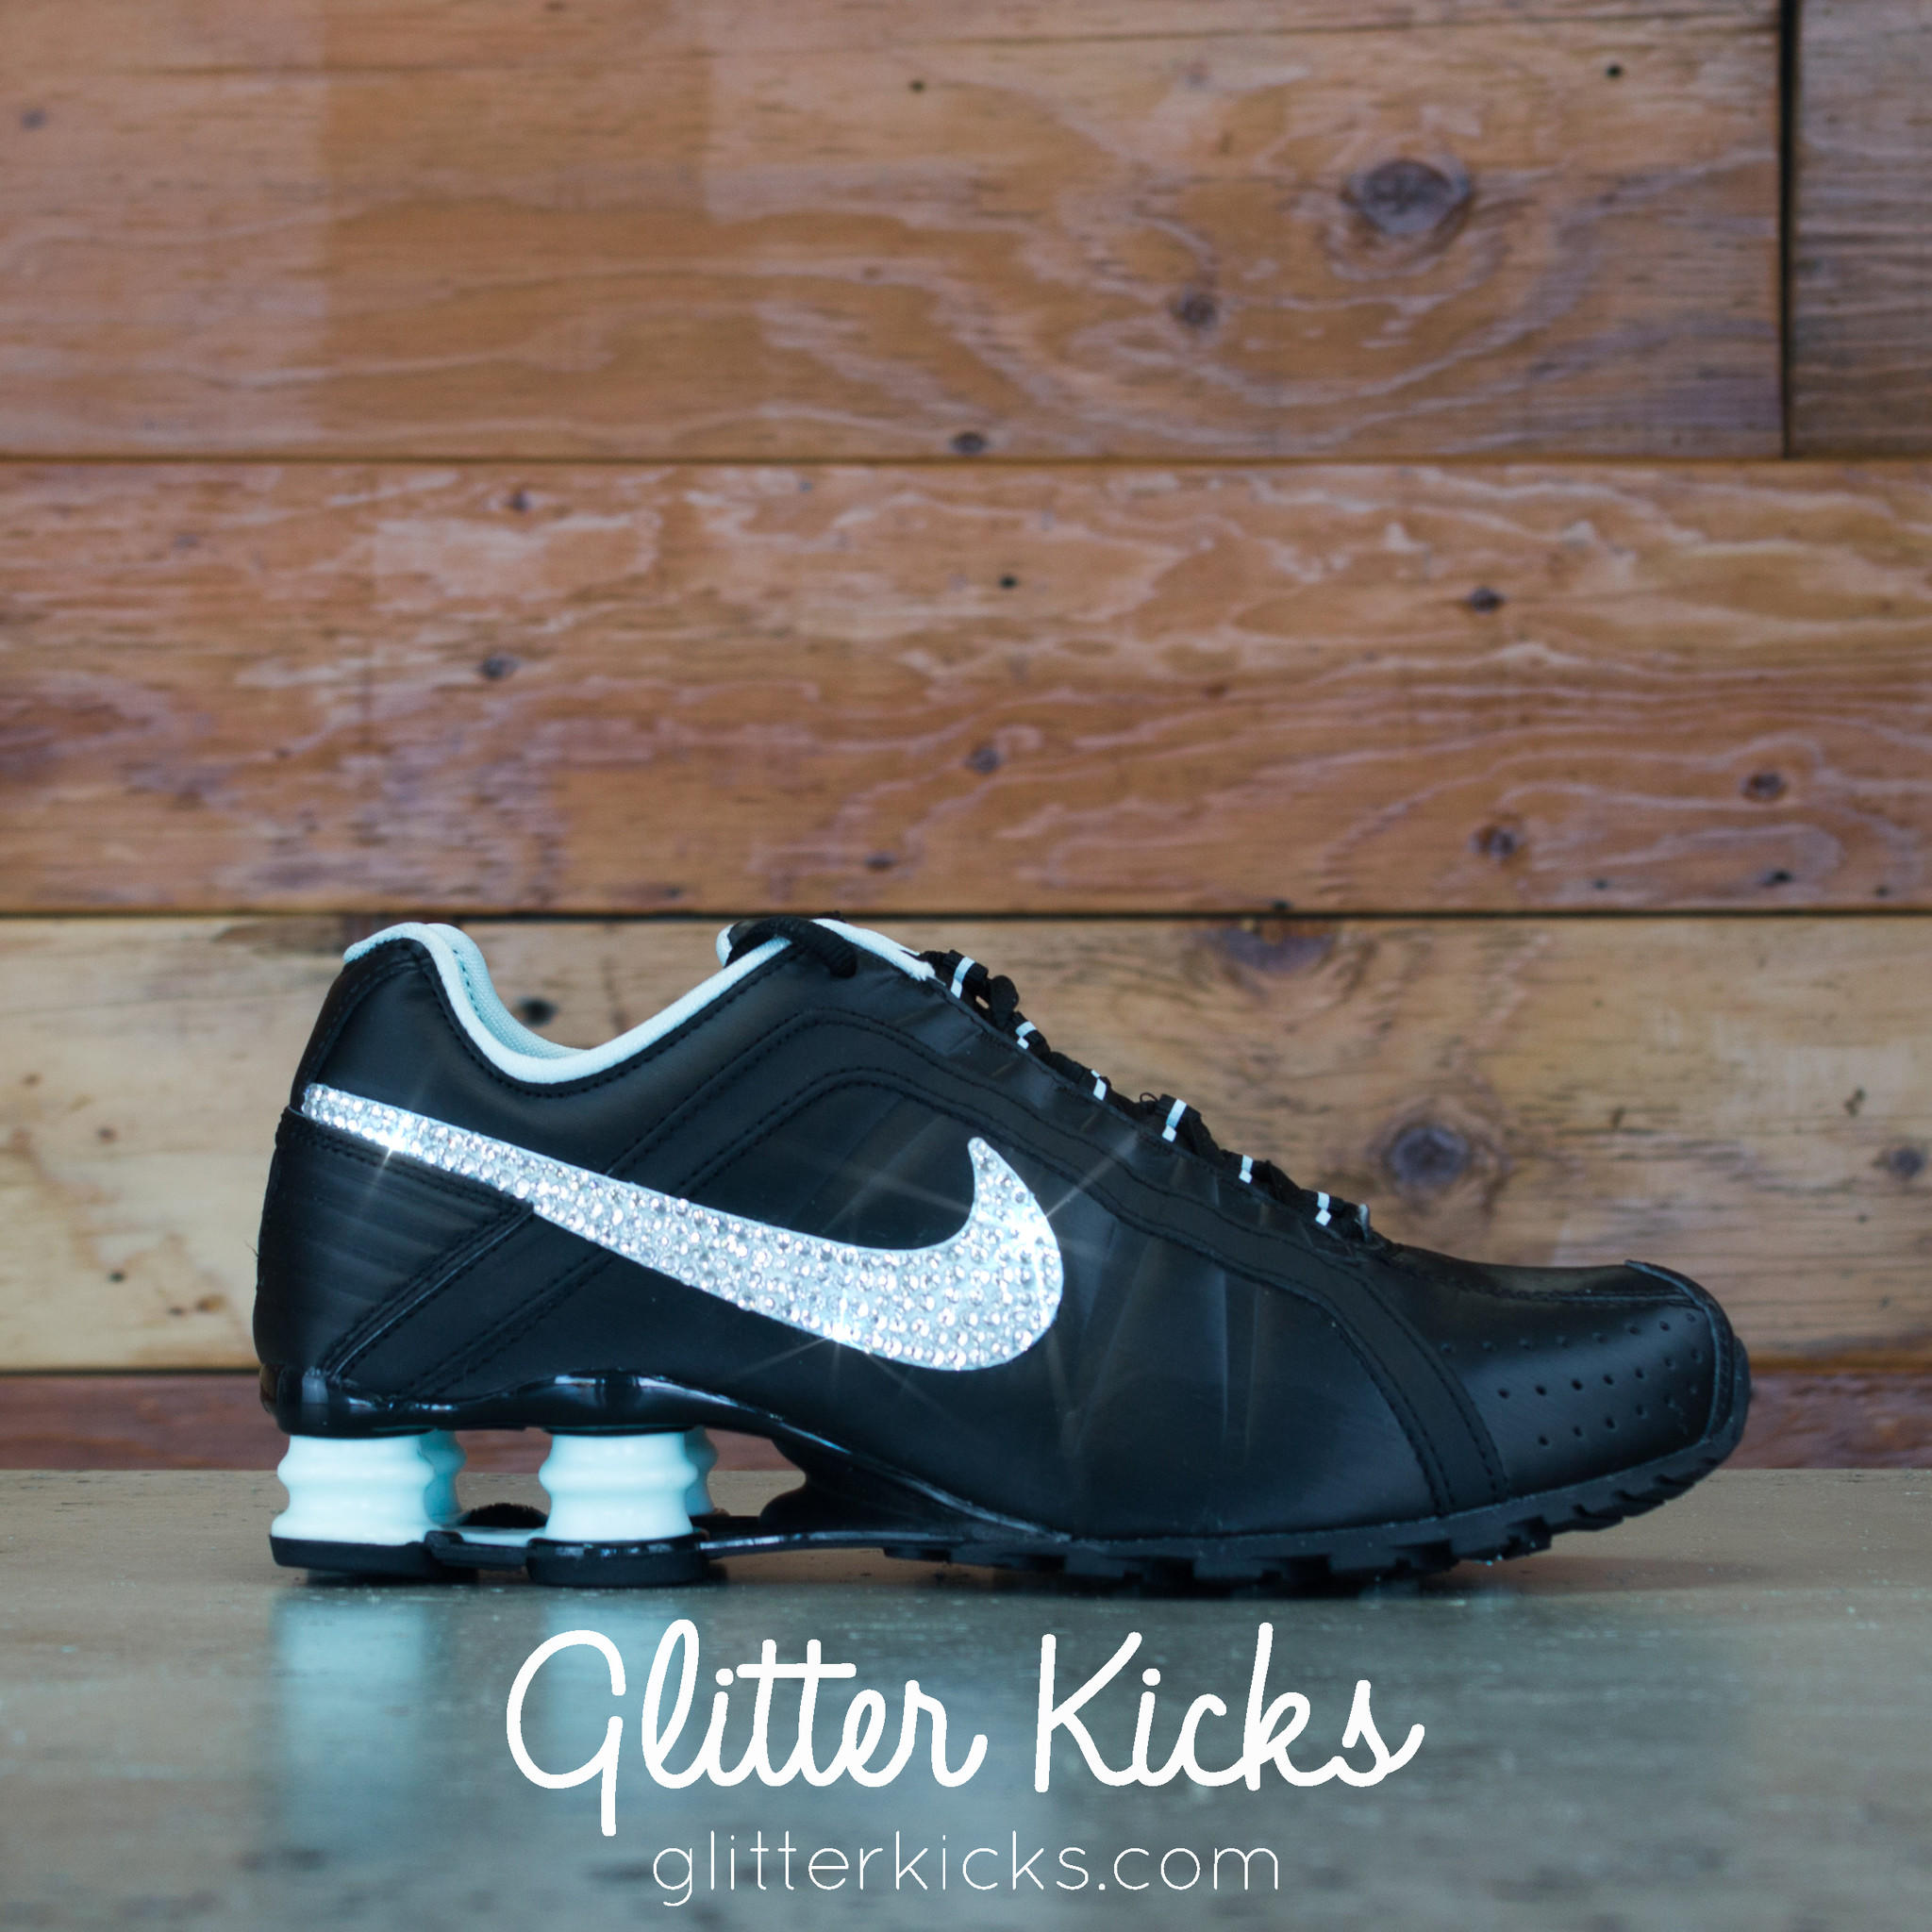 Nike Shox Current Glitter Kicks Running Shoes Black Tiffany eb3b31a82b